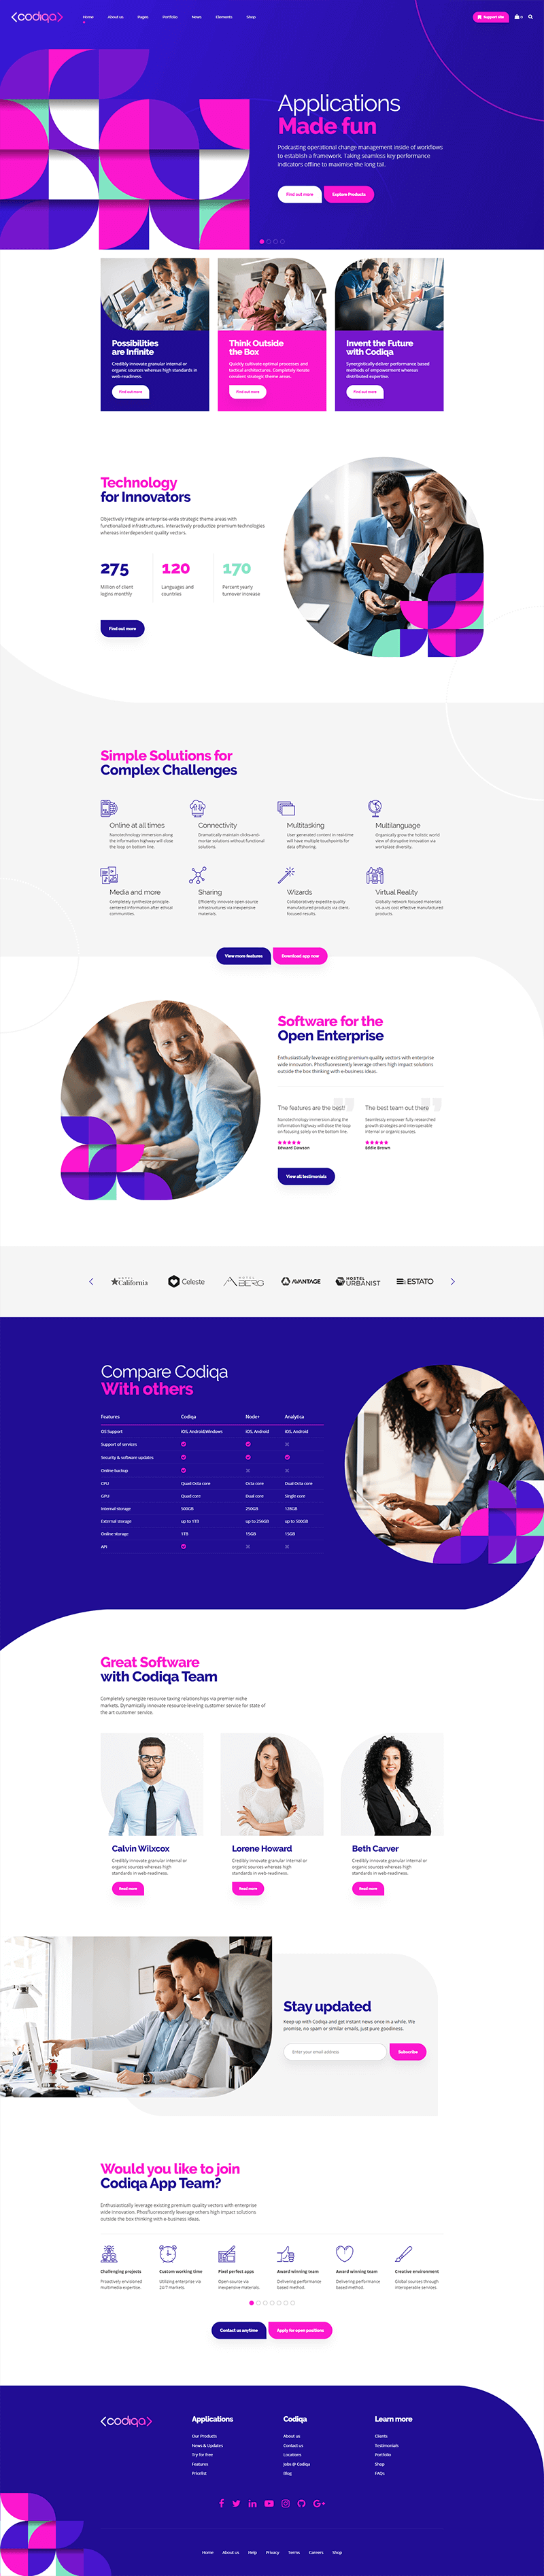 https://codiqa.bold-themes.com/wp-content/uploads/2019/10/demo-01-software.png